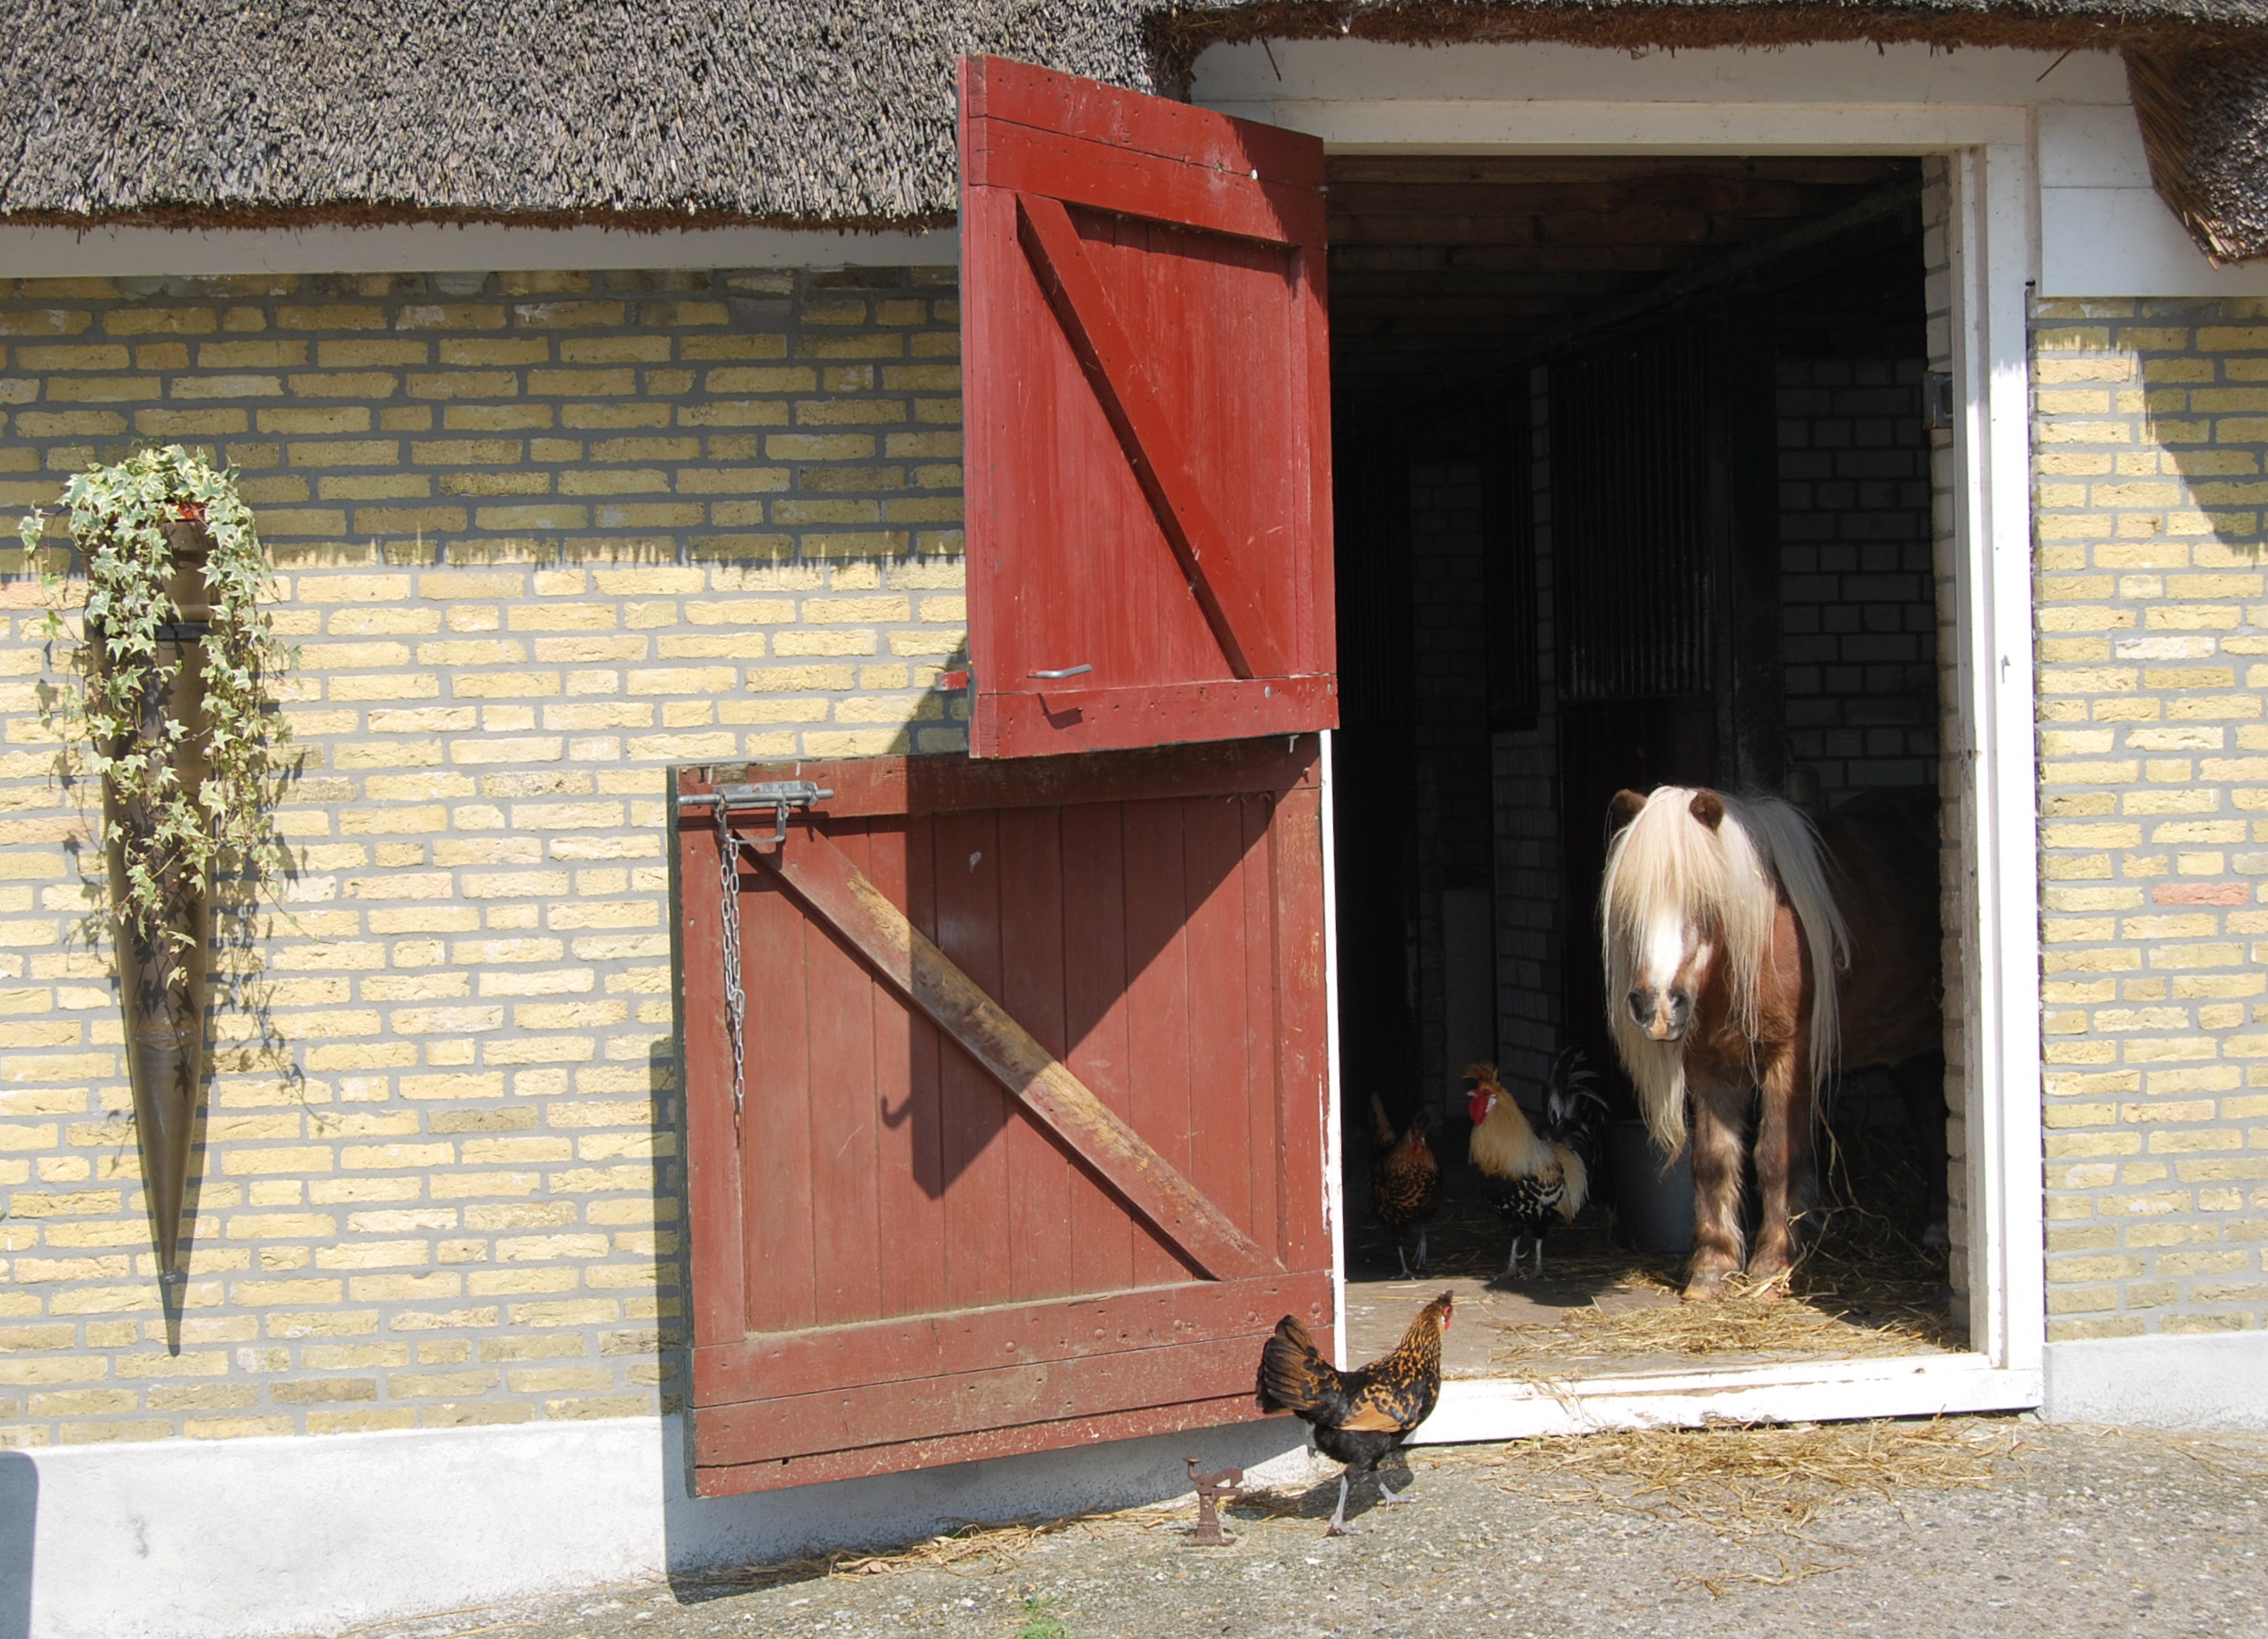 Stable Jaegersrust the Netherlands